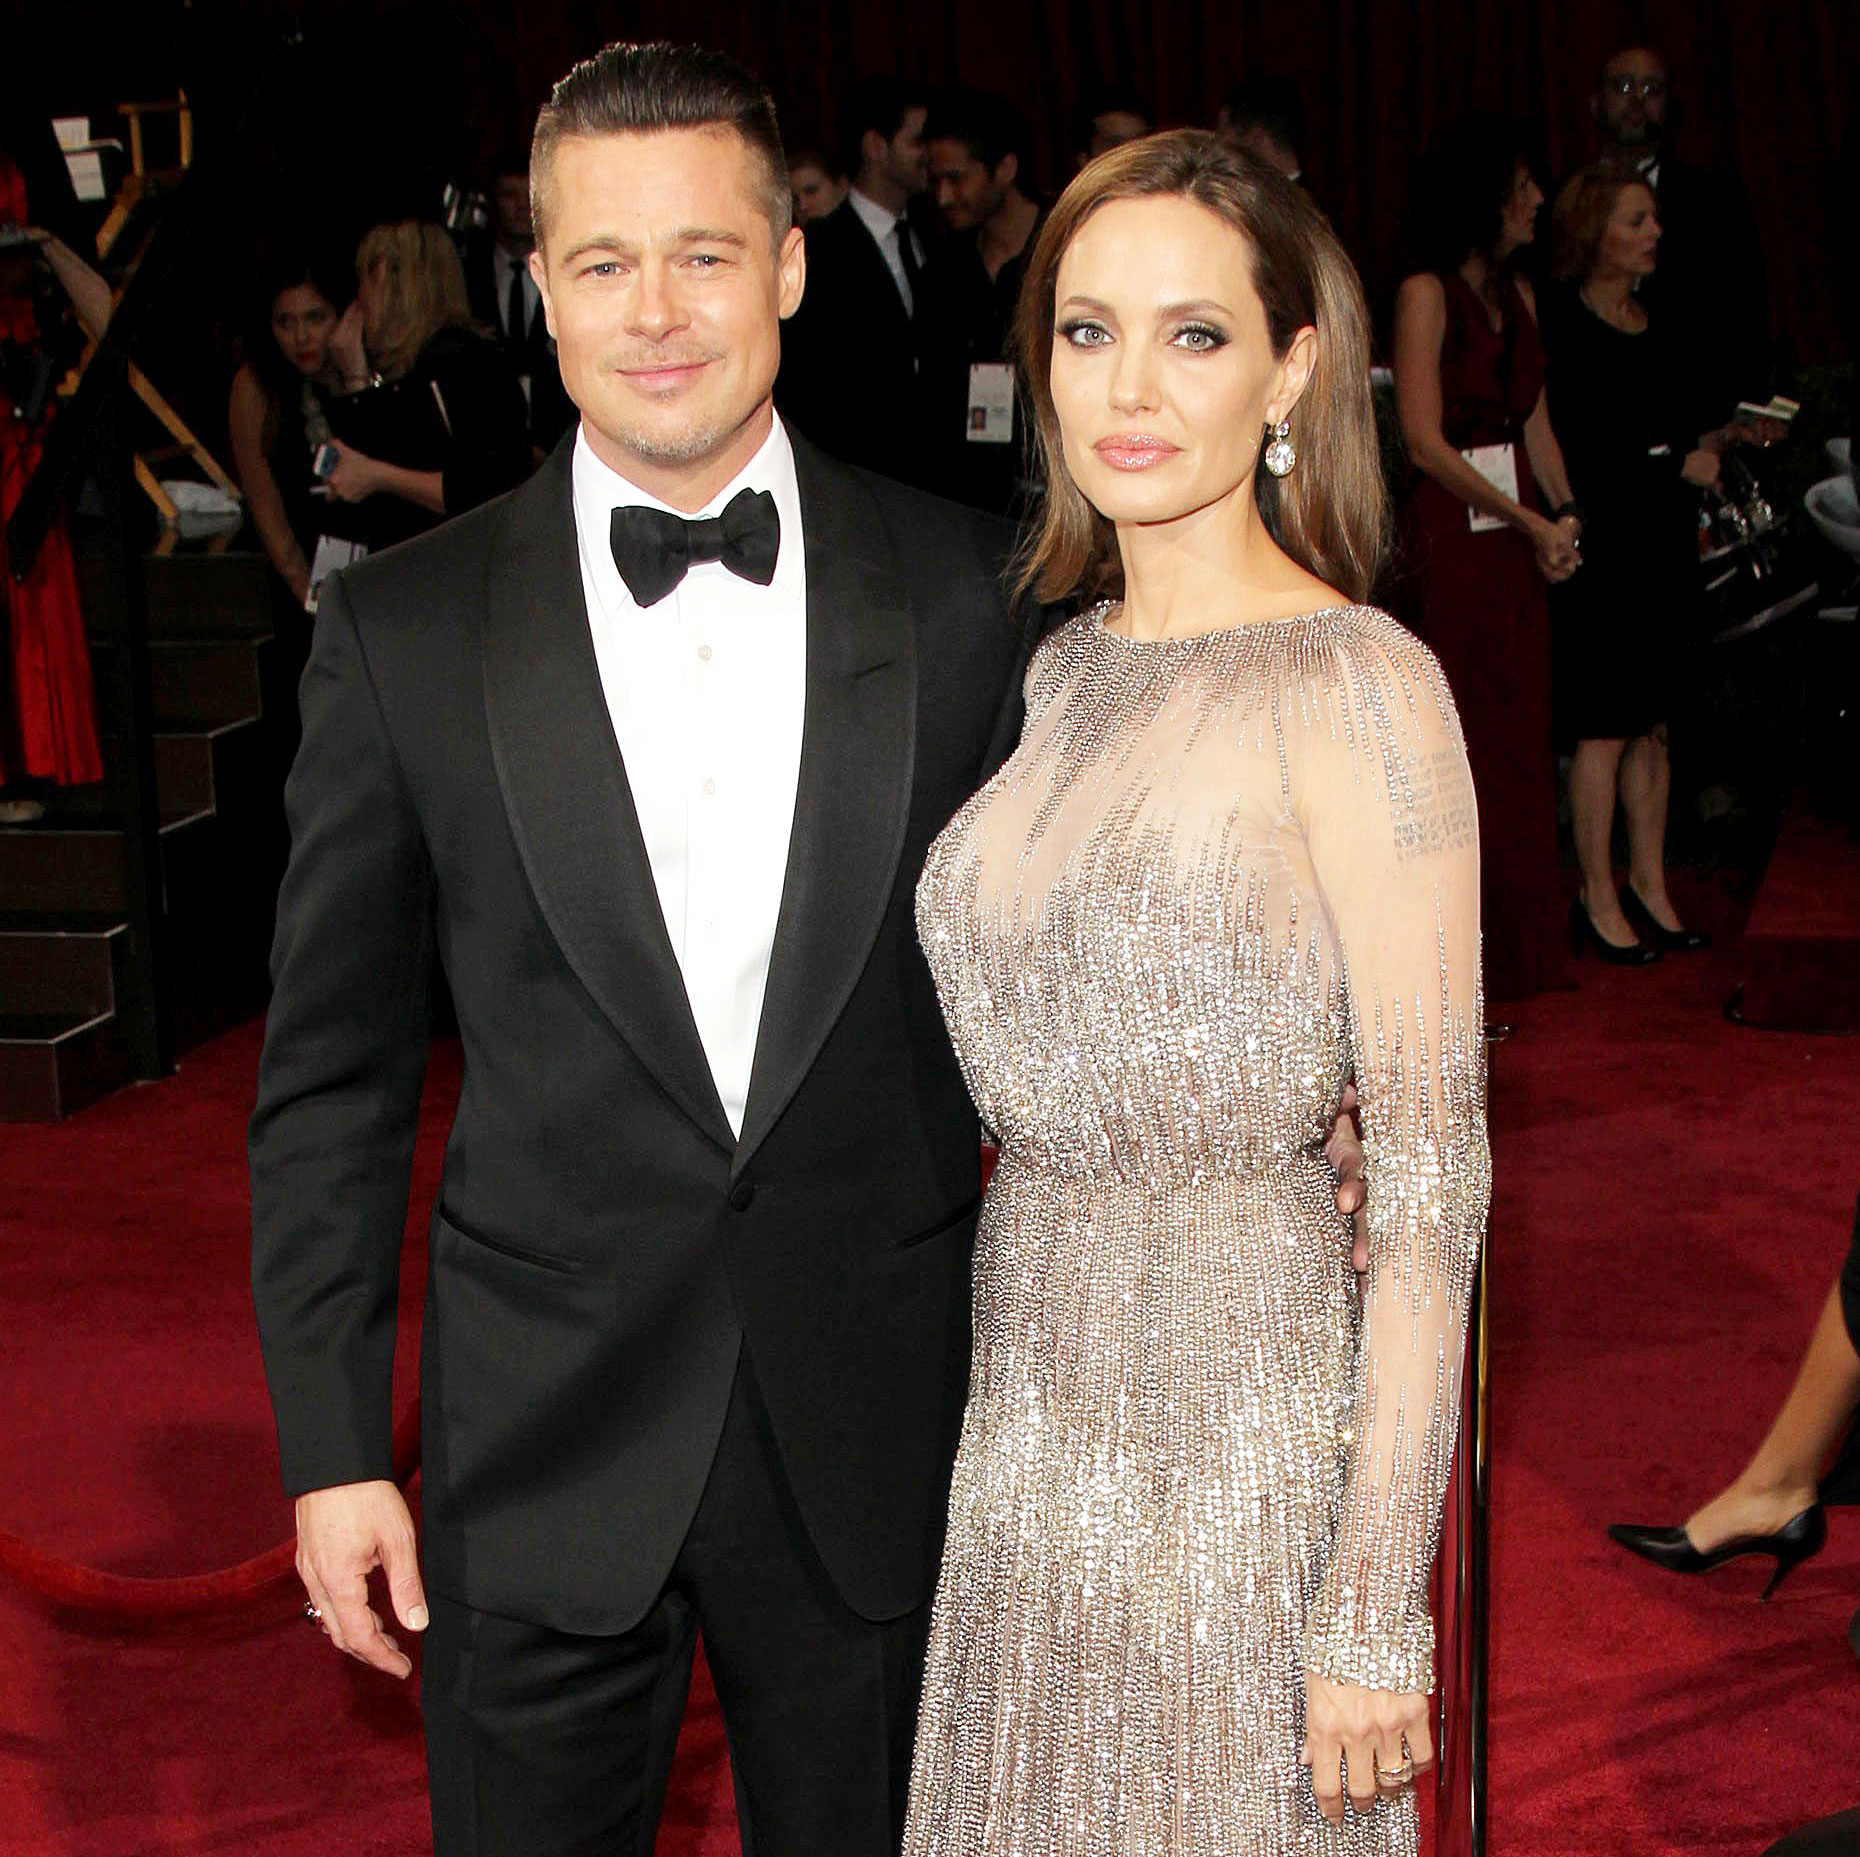 Brad Pitt and Angelina Jolie Are More Cordial Than Ever Following Custody Battle